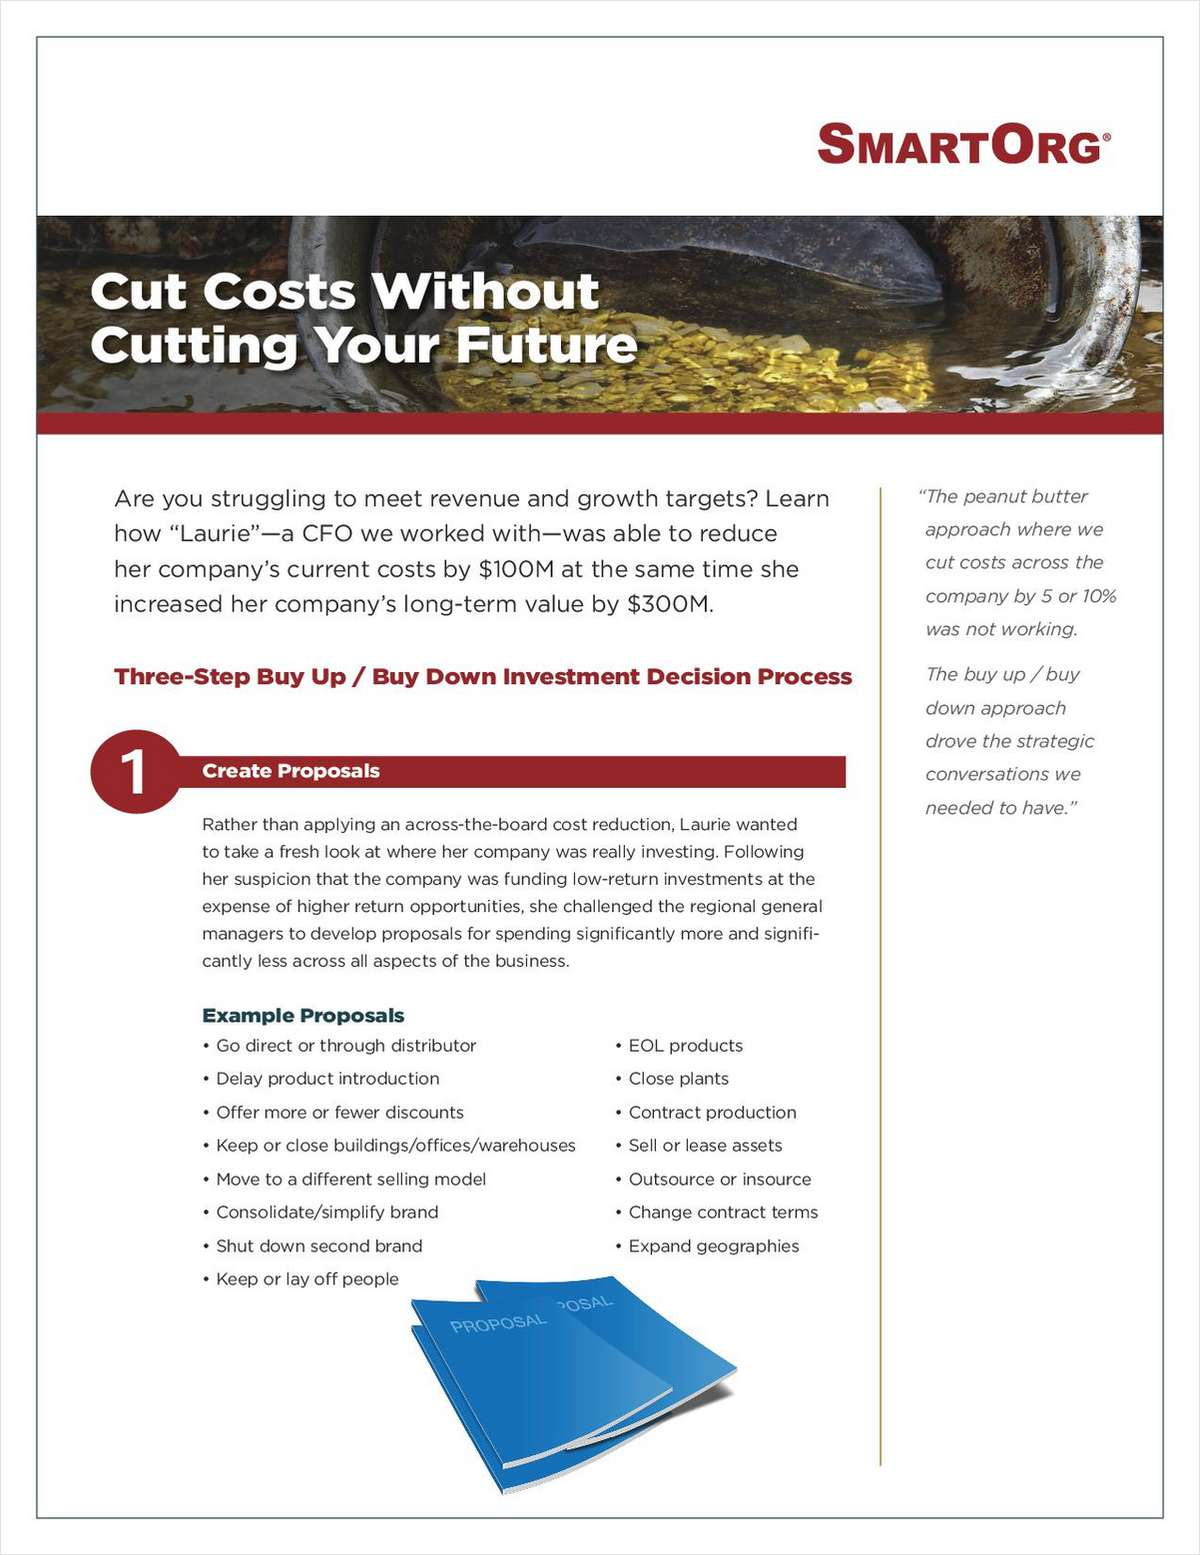 Cutting Costs Without Cutting Your Future